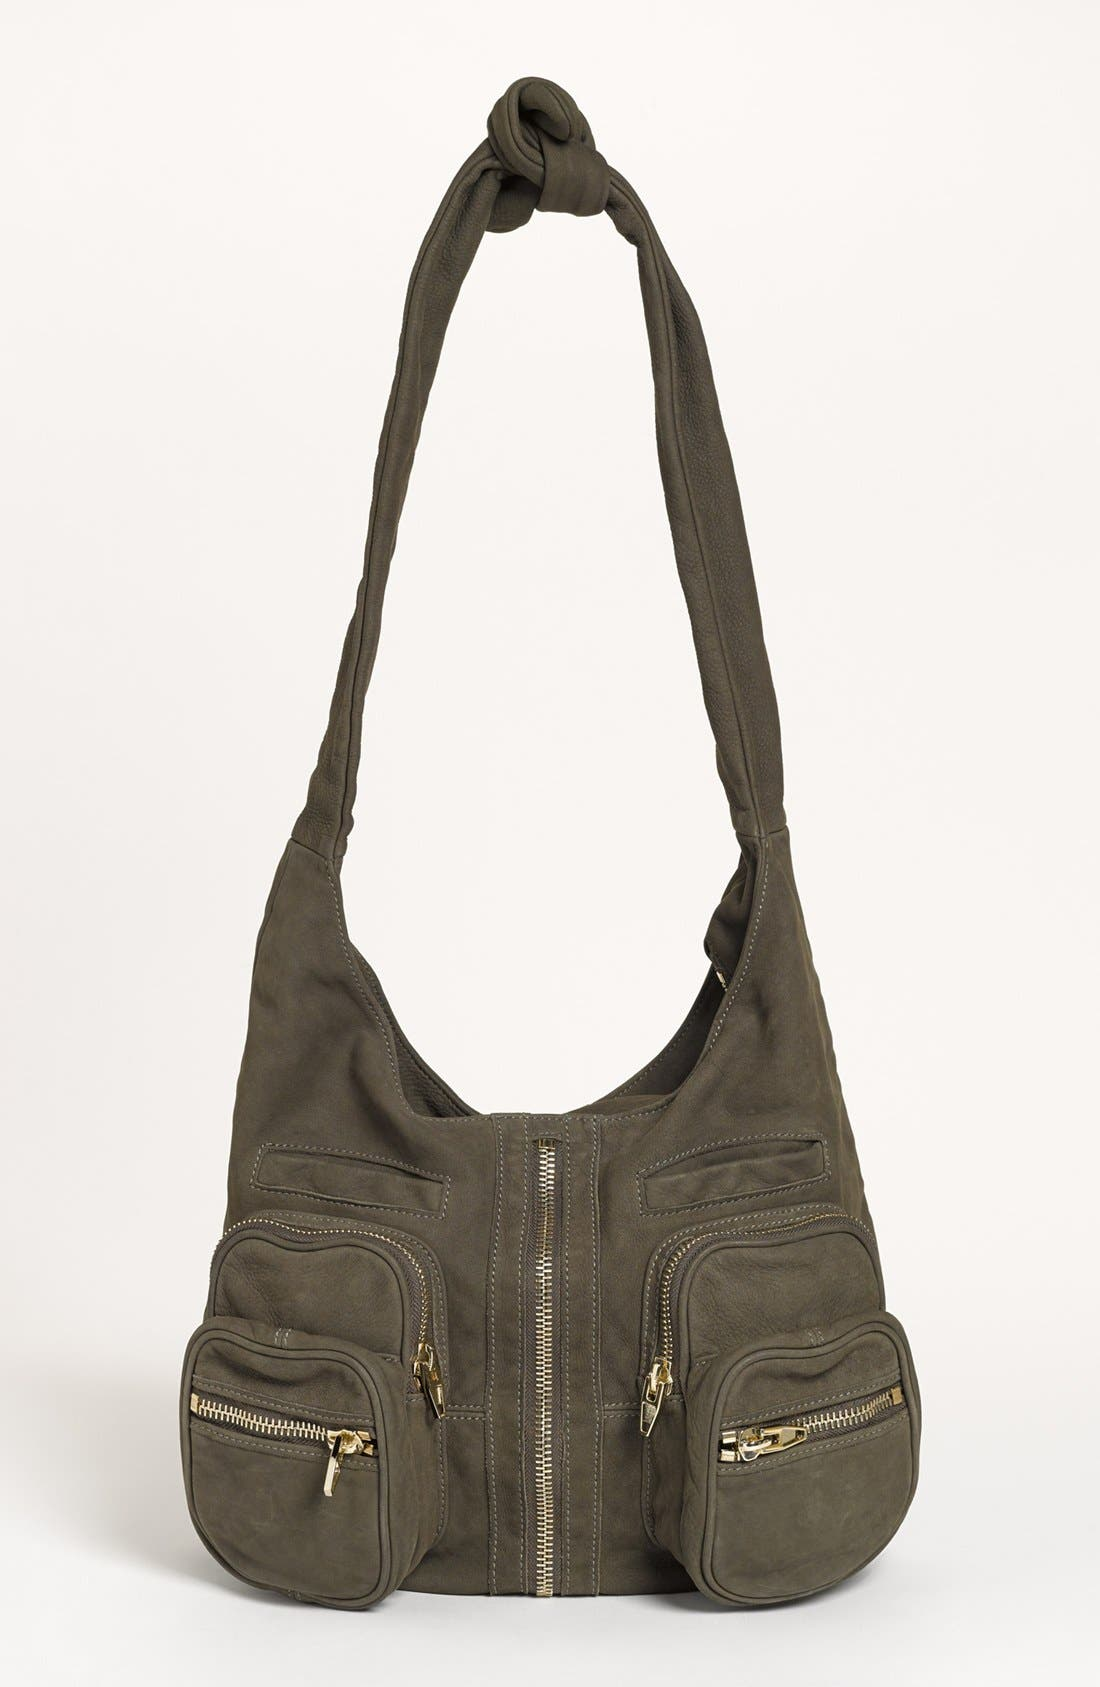 Main Image - Alexander Wang 'Donna - Pale Gold' Nubuck Leather Hobo